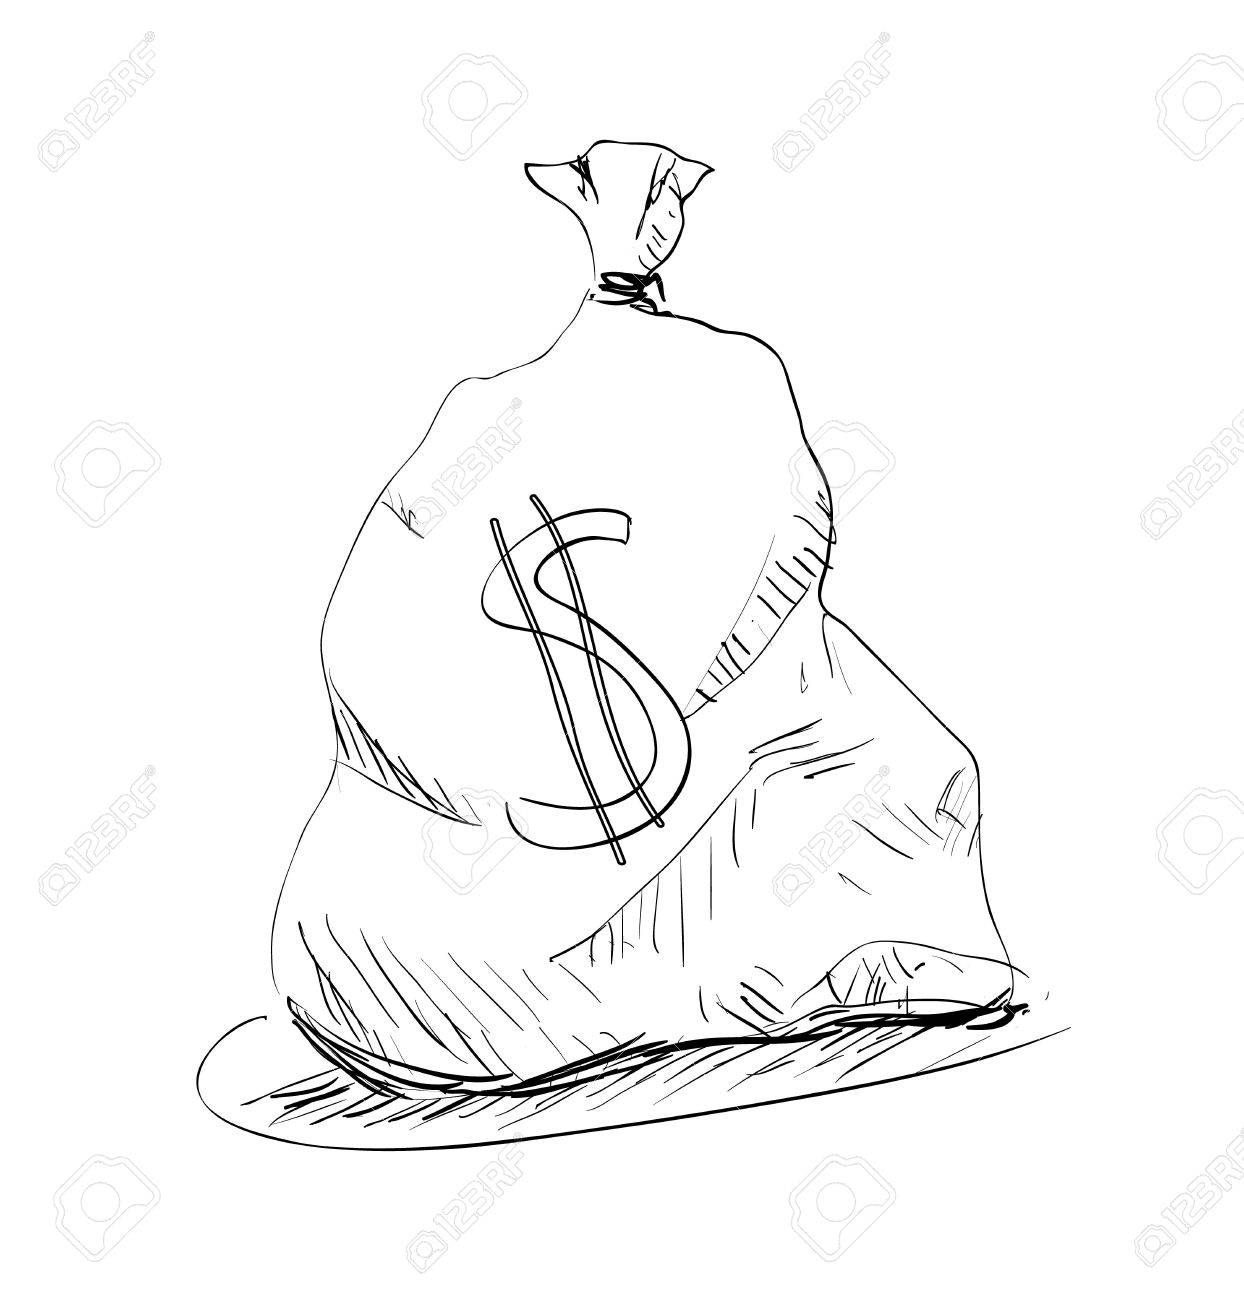 1244x1300 Money Bag With Dollar Sign Royalty Free Cliparts, Vectors,